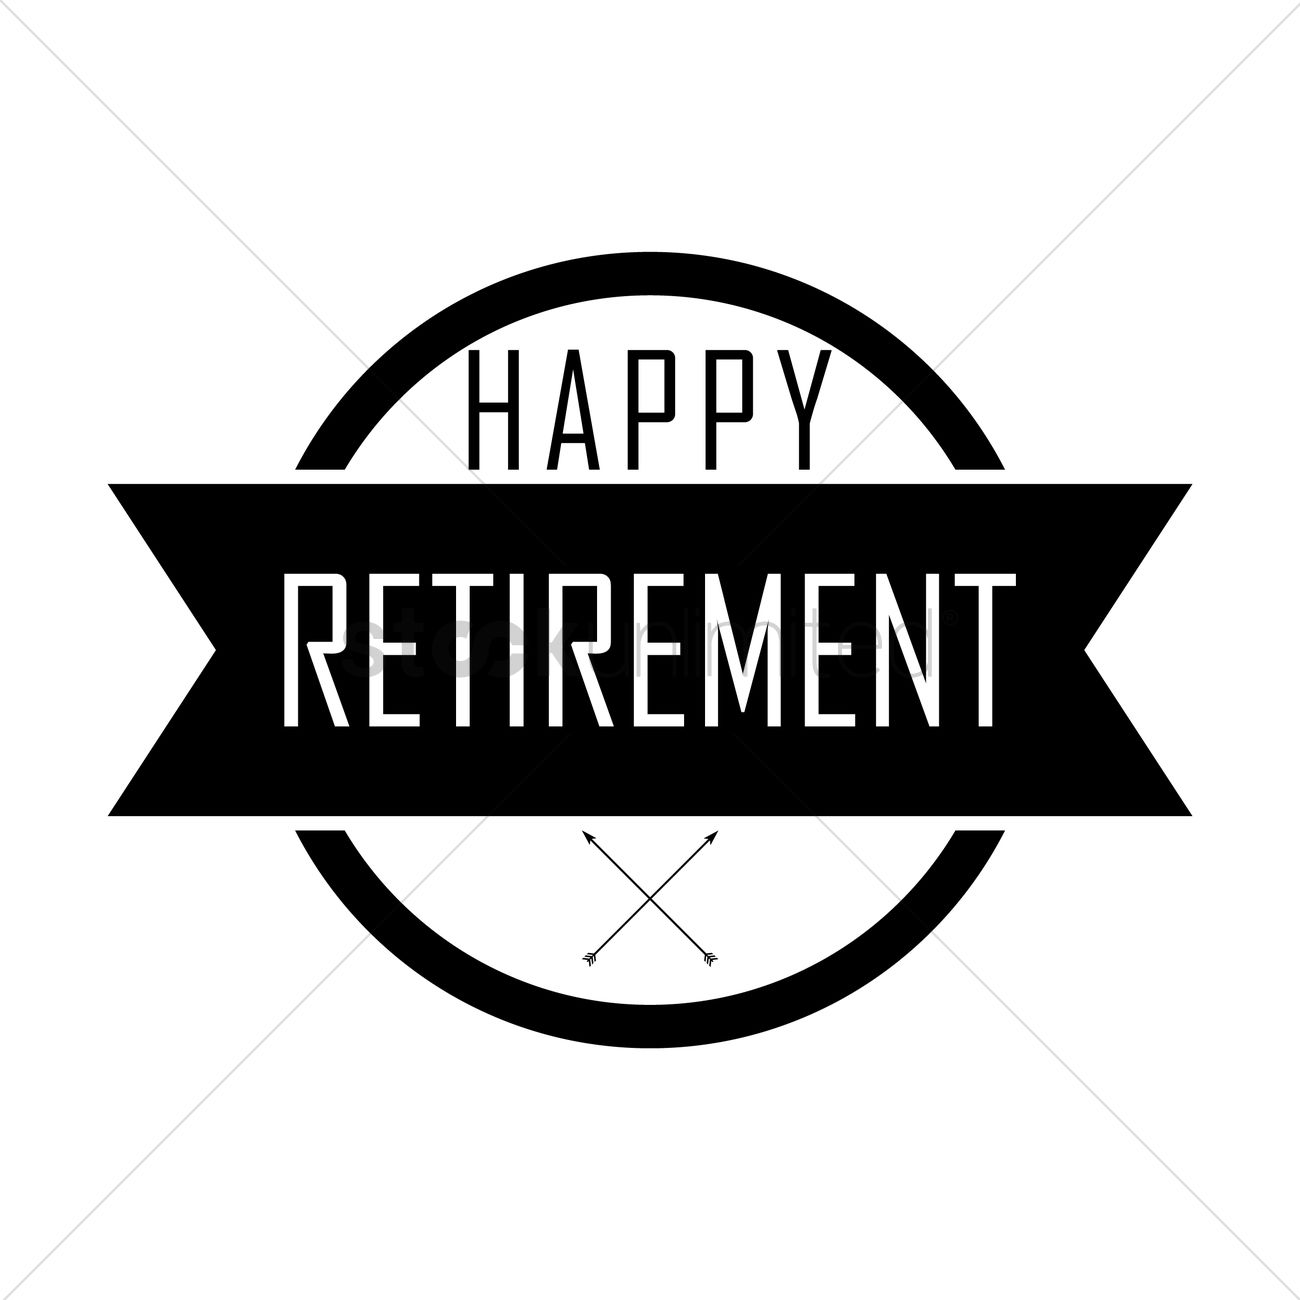 happy retirement wish vector image 1828123 stockunlimited retirement clip art free black & white retirement clip art free black & white